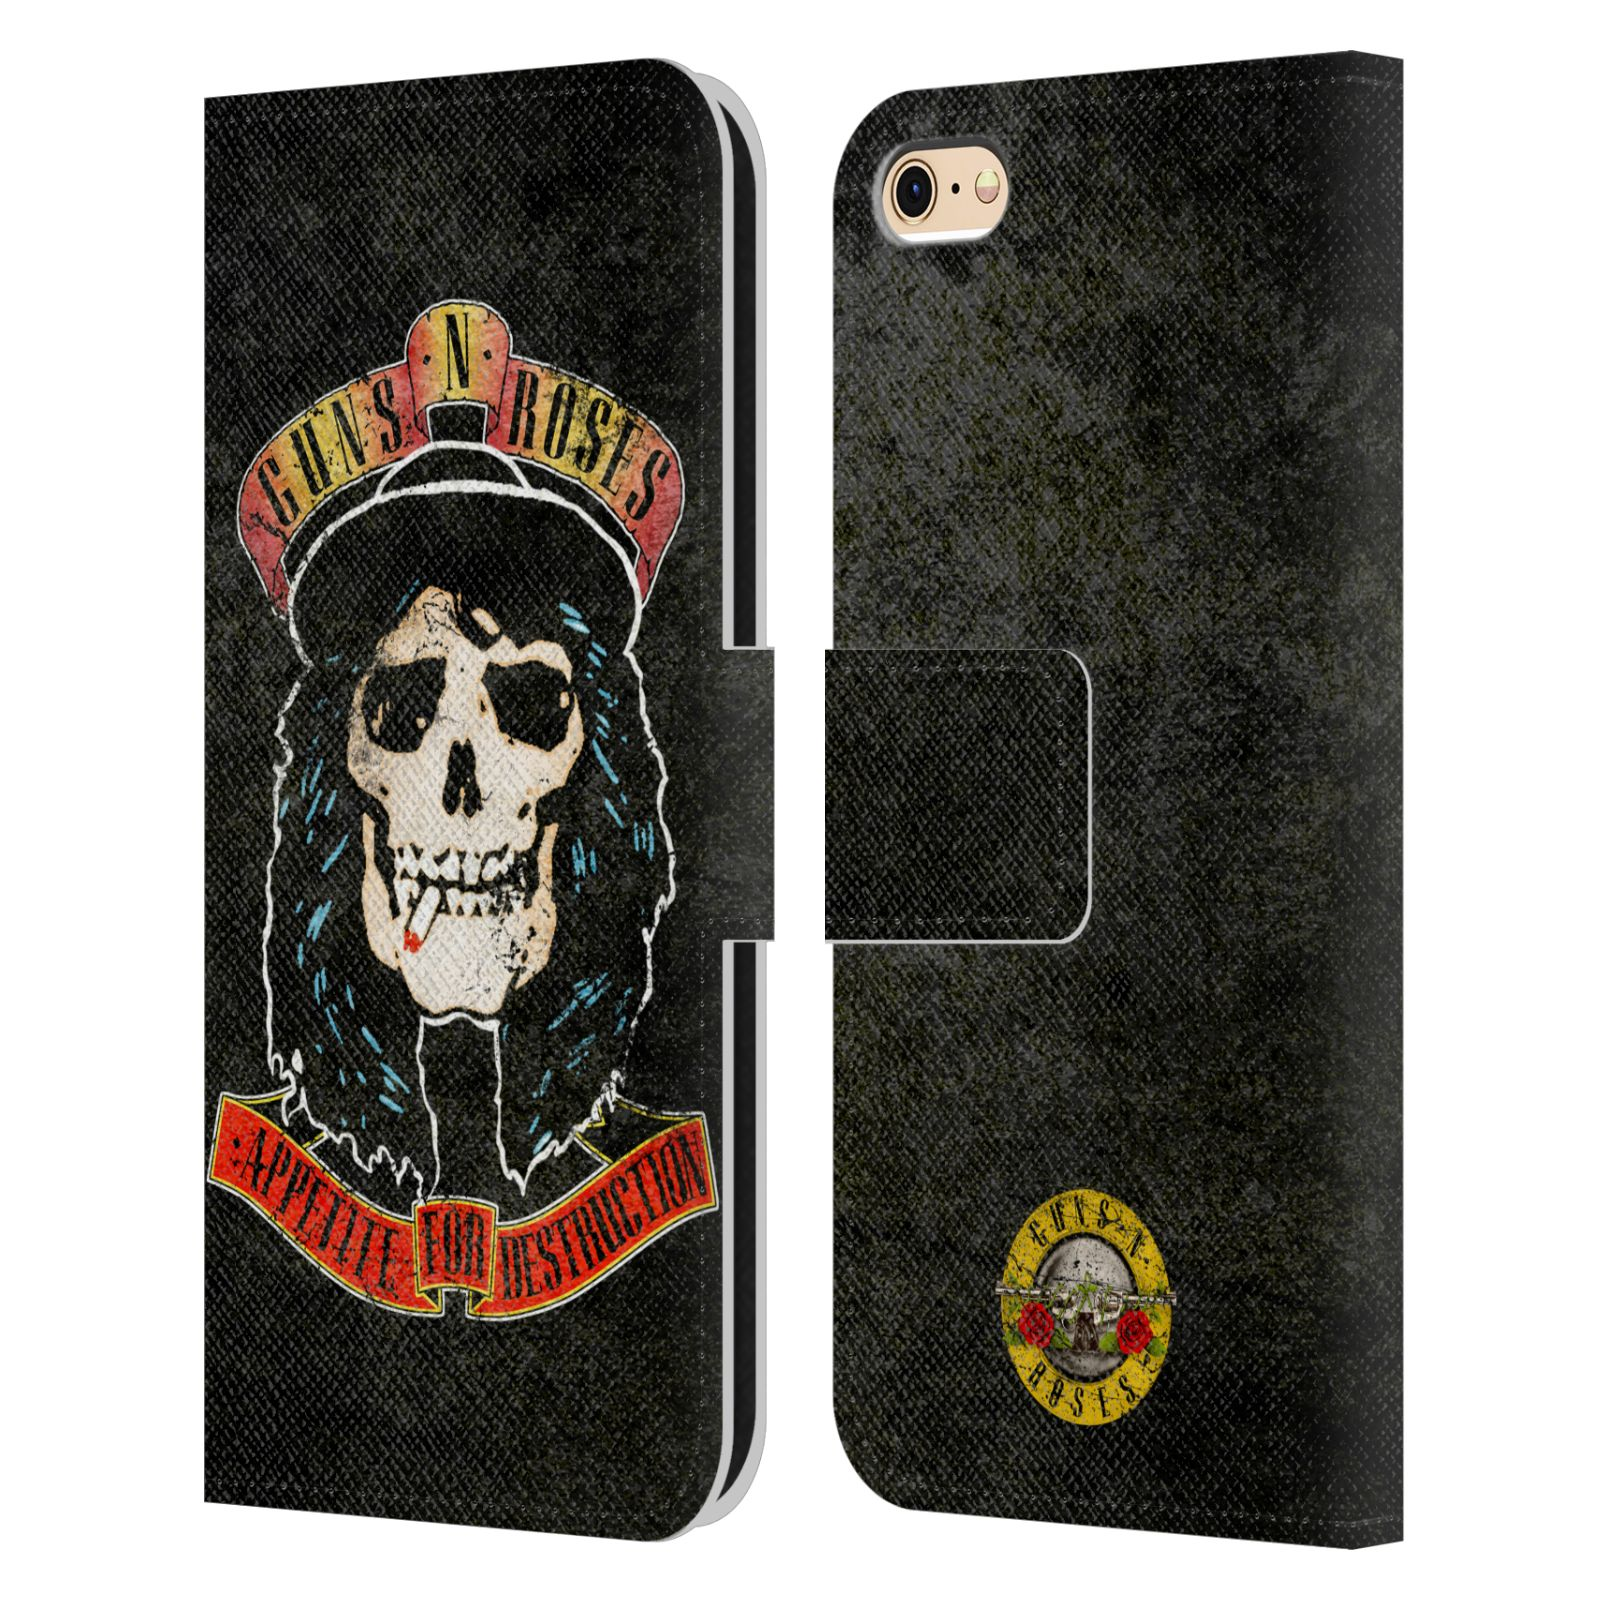 Old Leather Book Iphone Cover : Official guns n roses vintage leather book wallet case